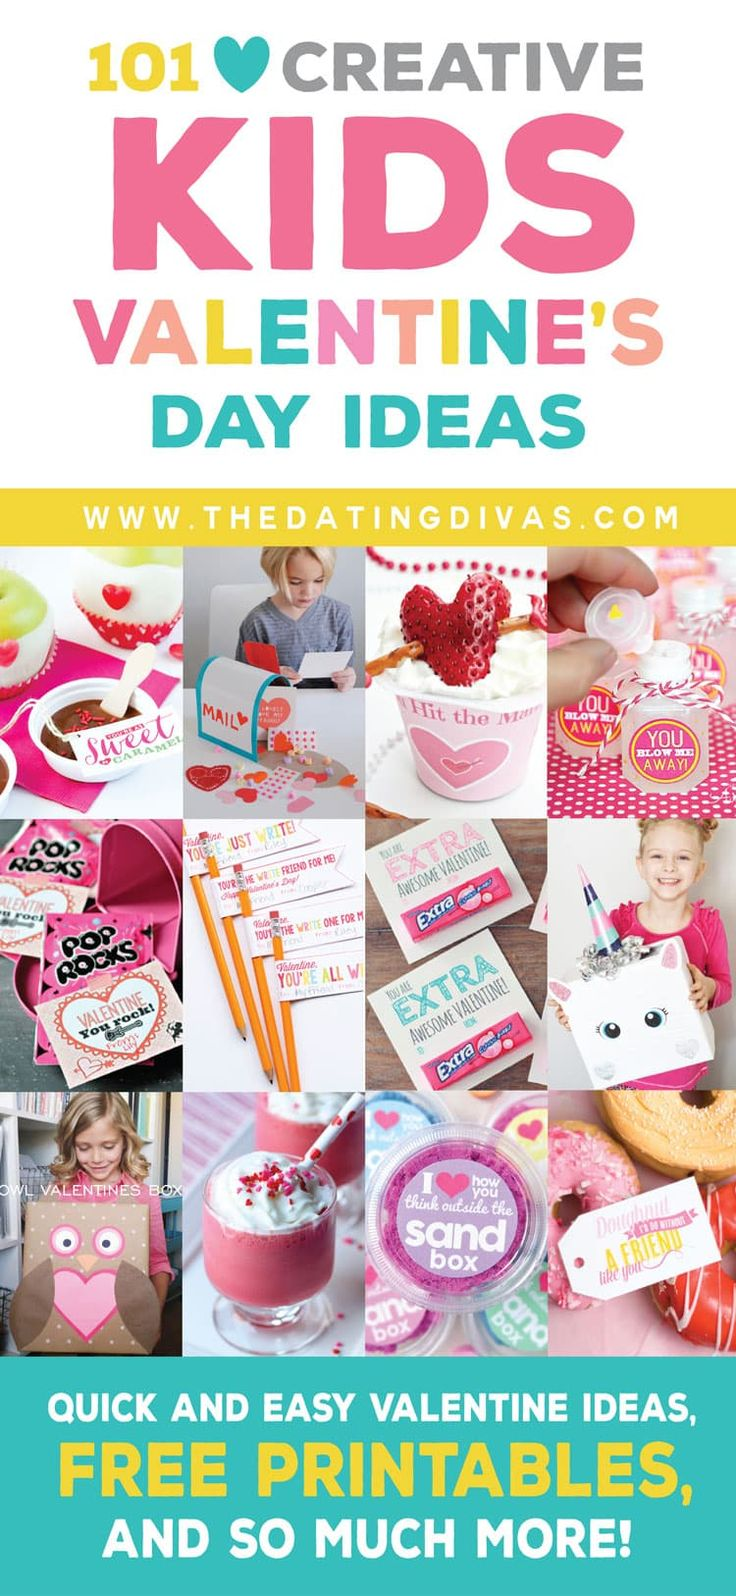 crafting ideas for kids best 25 creative valentines day ideas ideas on 4114